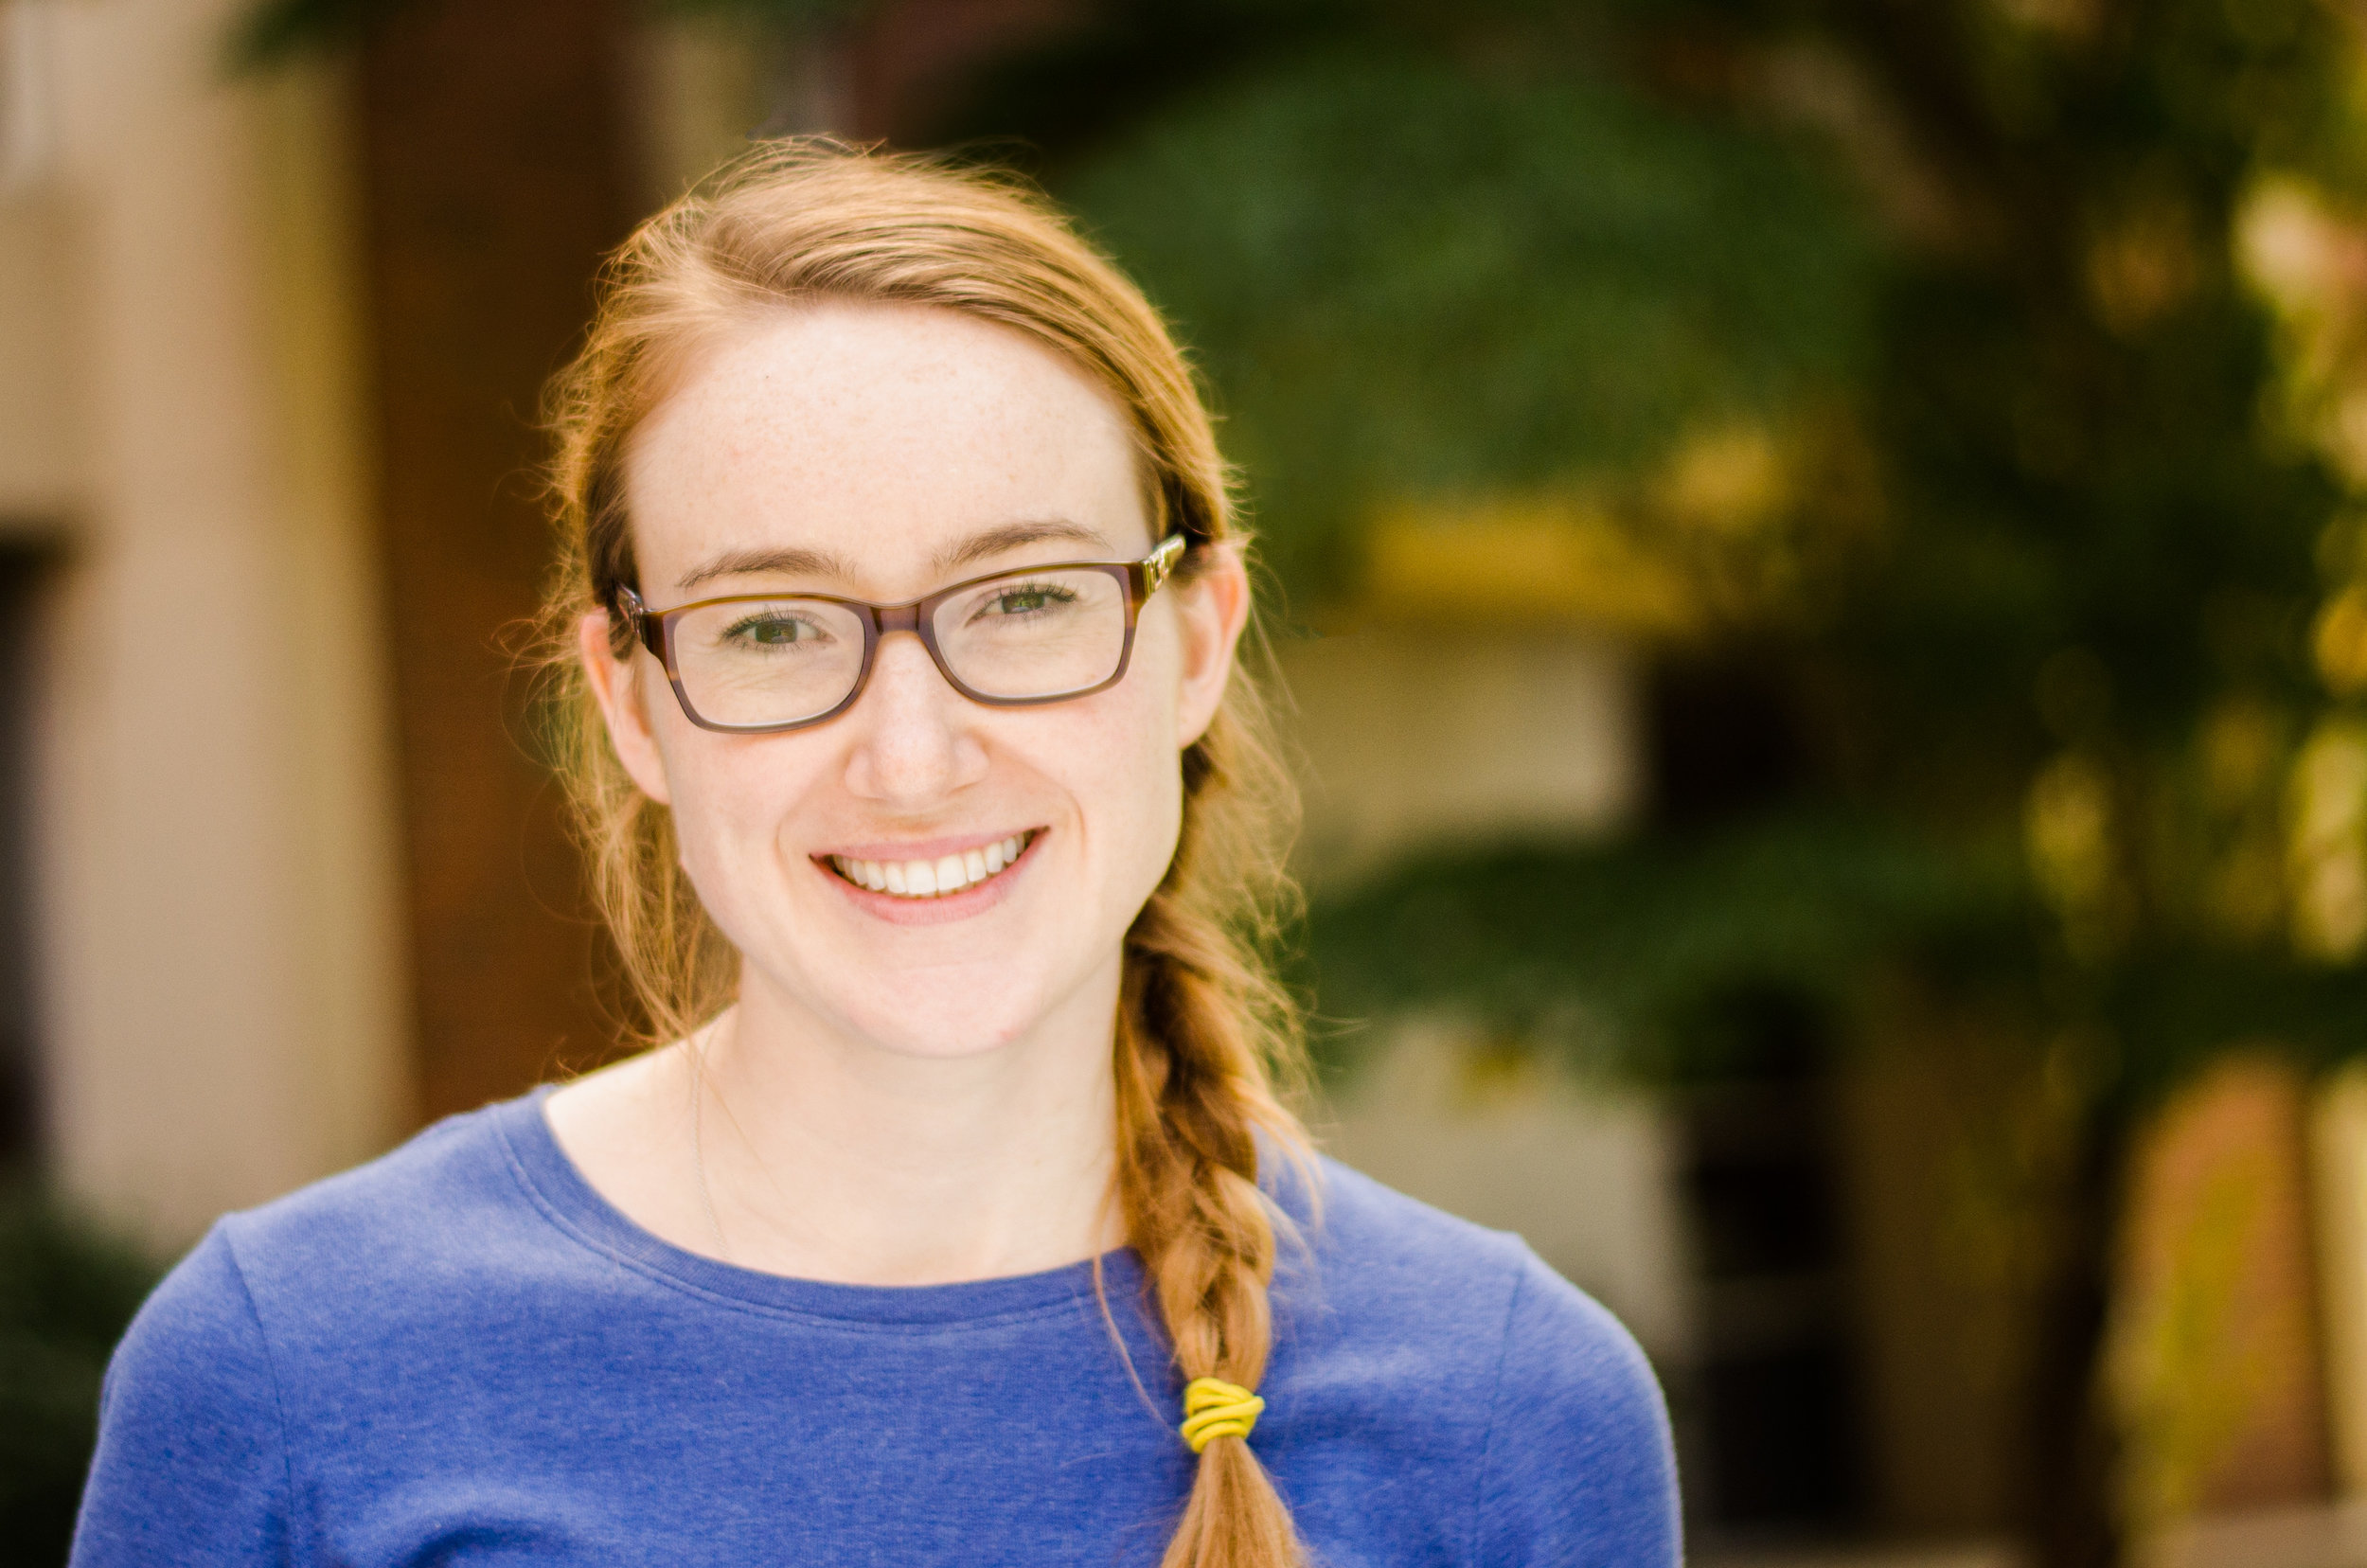 Becca Taylor   Graduate student, Chemistry and Chemical Biology   Email